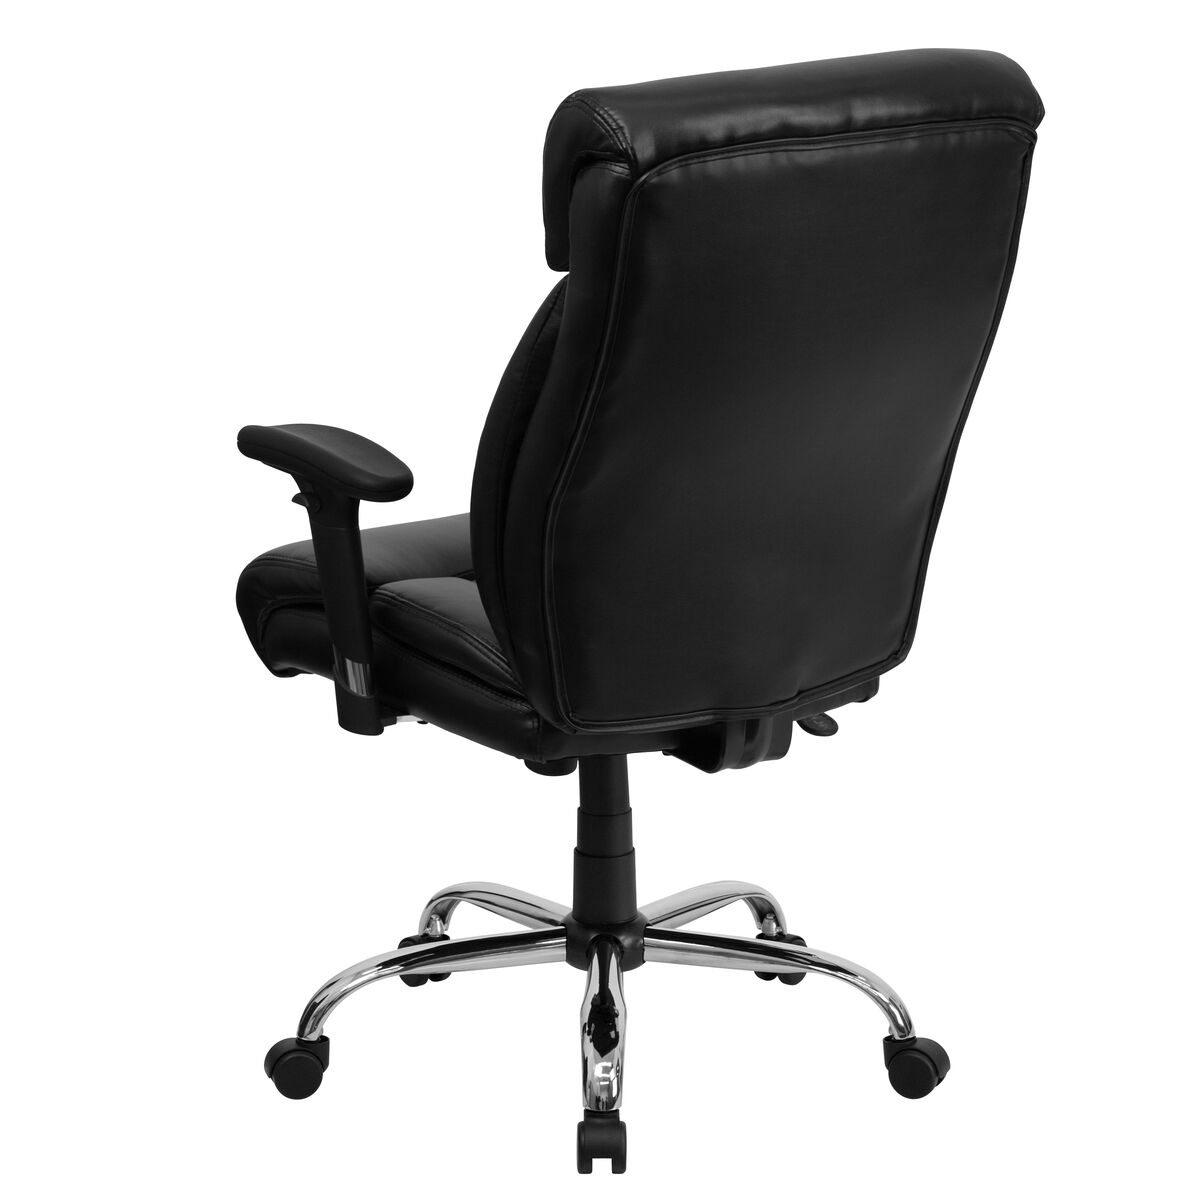 Our Hercules Series Tall 400 Lb Rated Black Leather Executive Ergonomic Office Chair